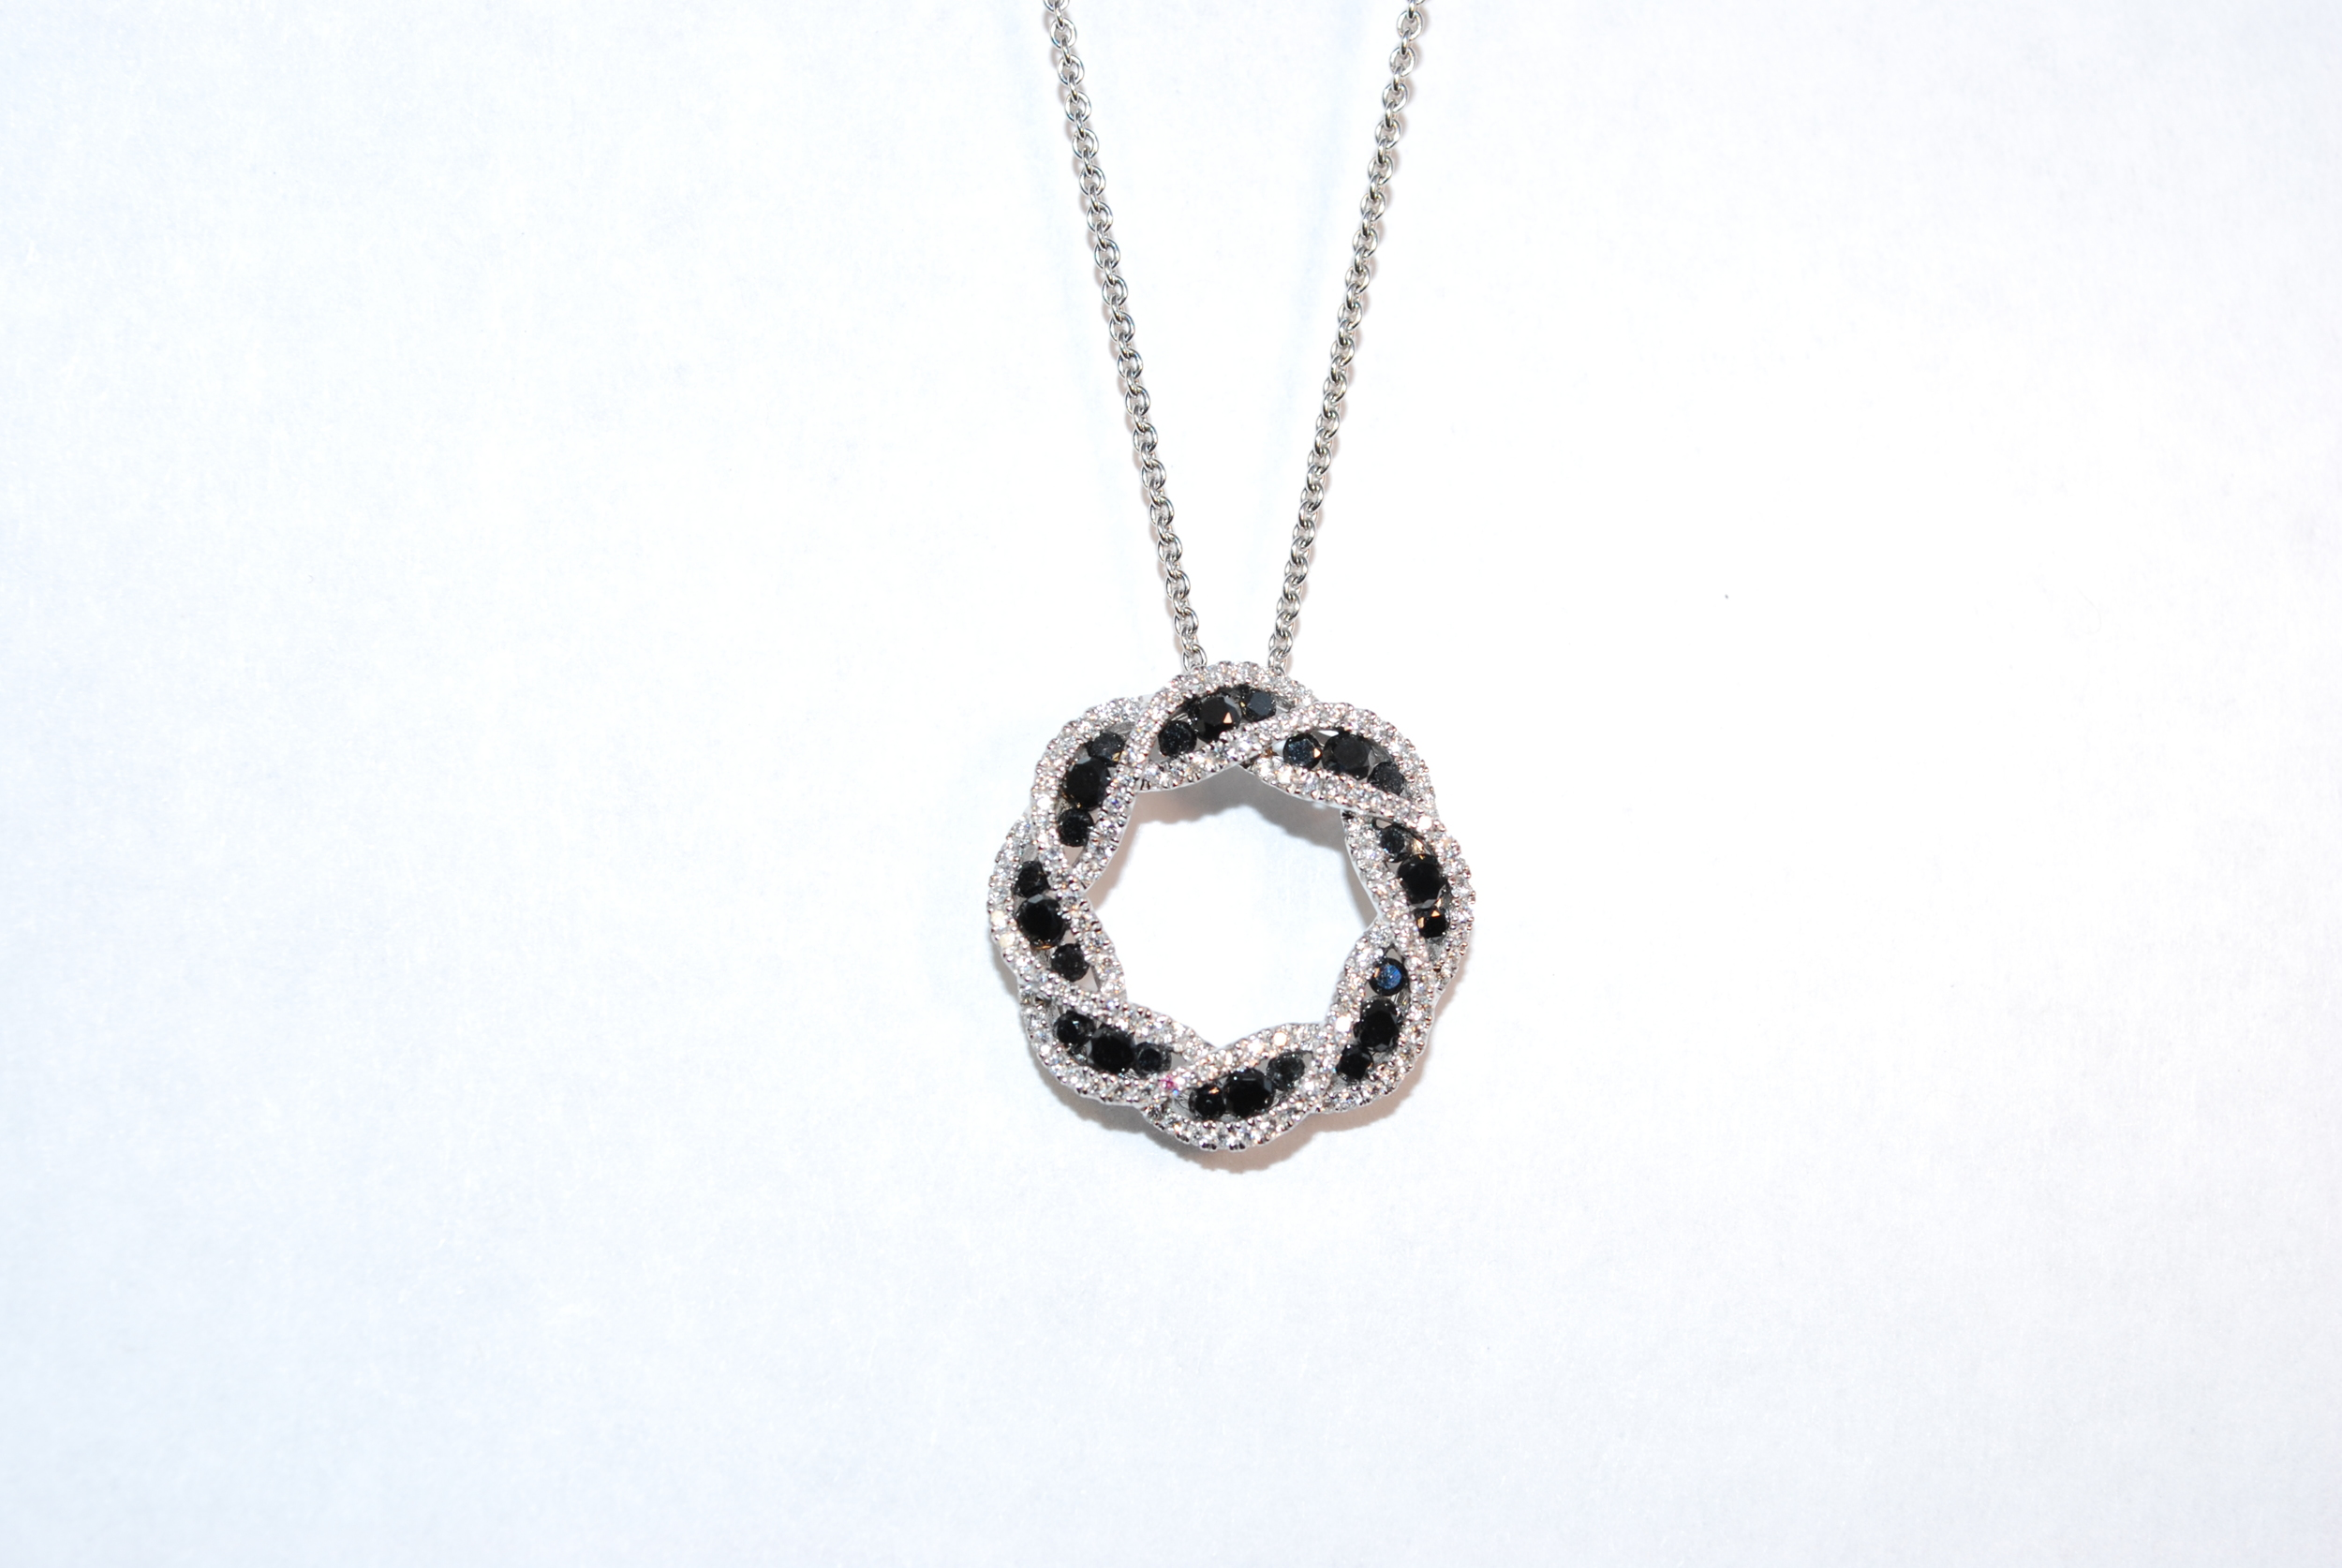 Black and white diamonds wreath pendant – circle of black diamonds and white diamonds intertwined in a gorgeous pendant. Beautifully cut black diamonds that sparkle white gold.  $5000